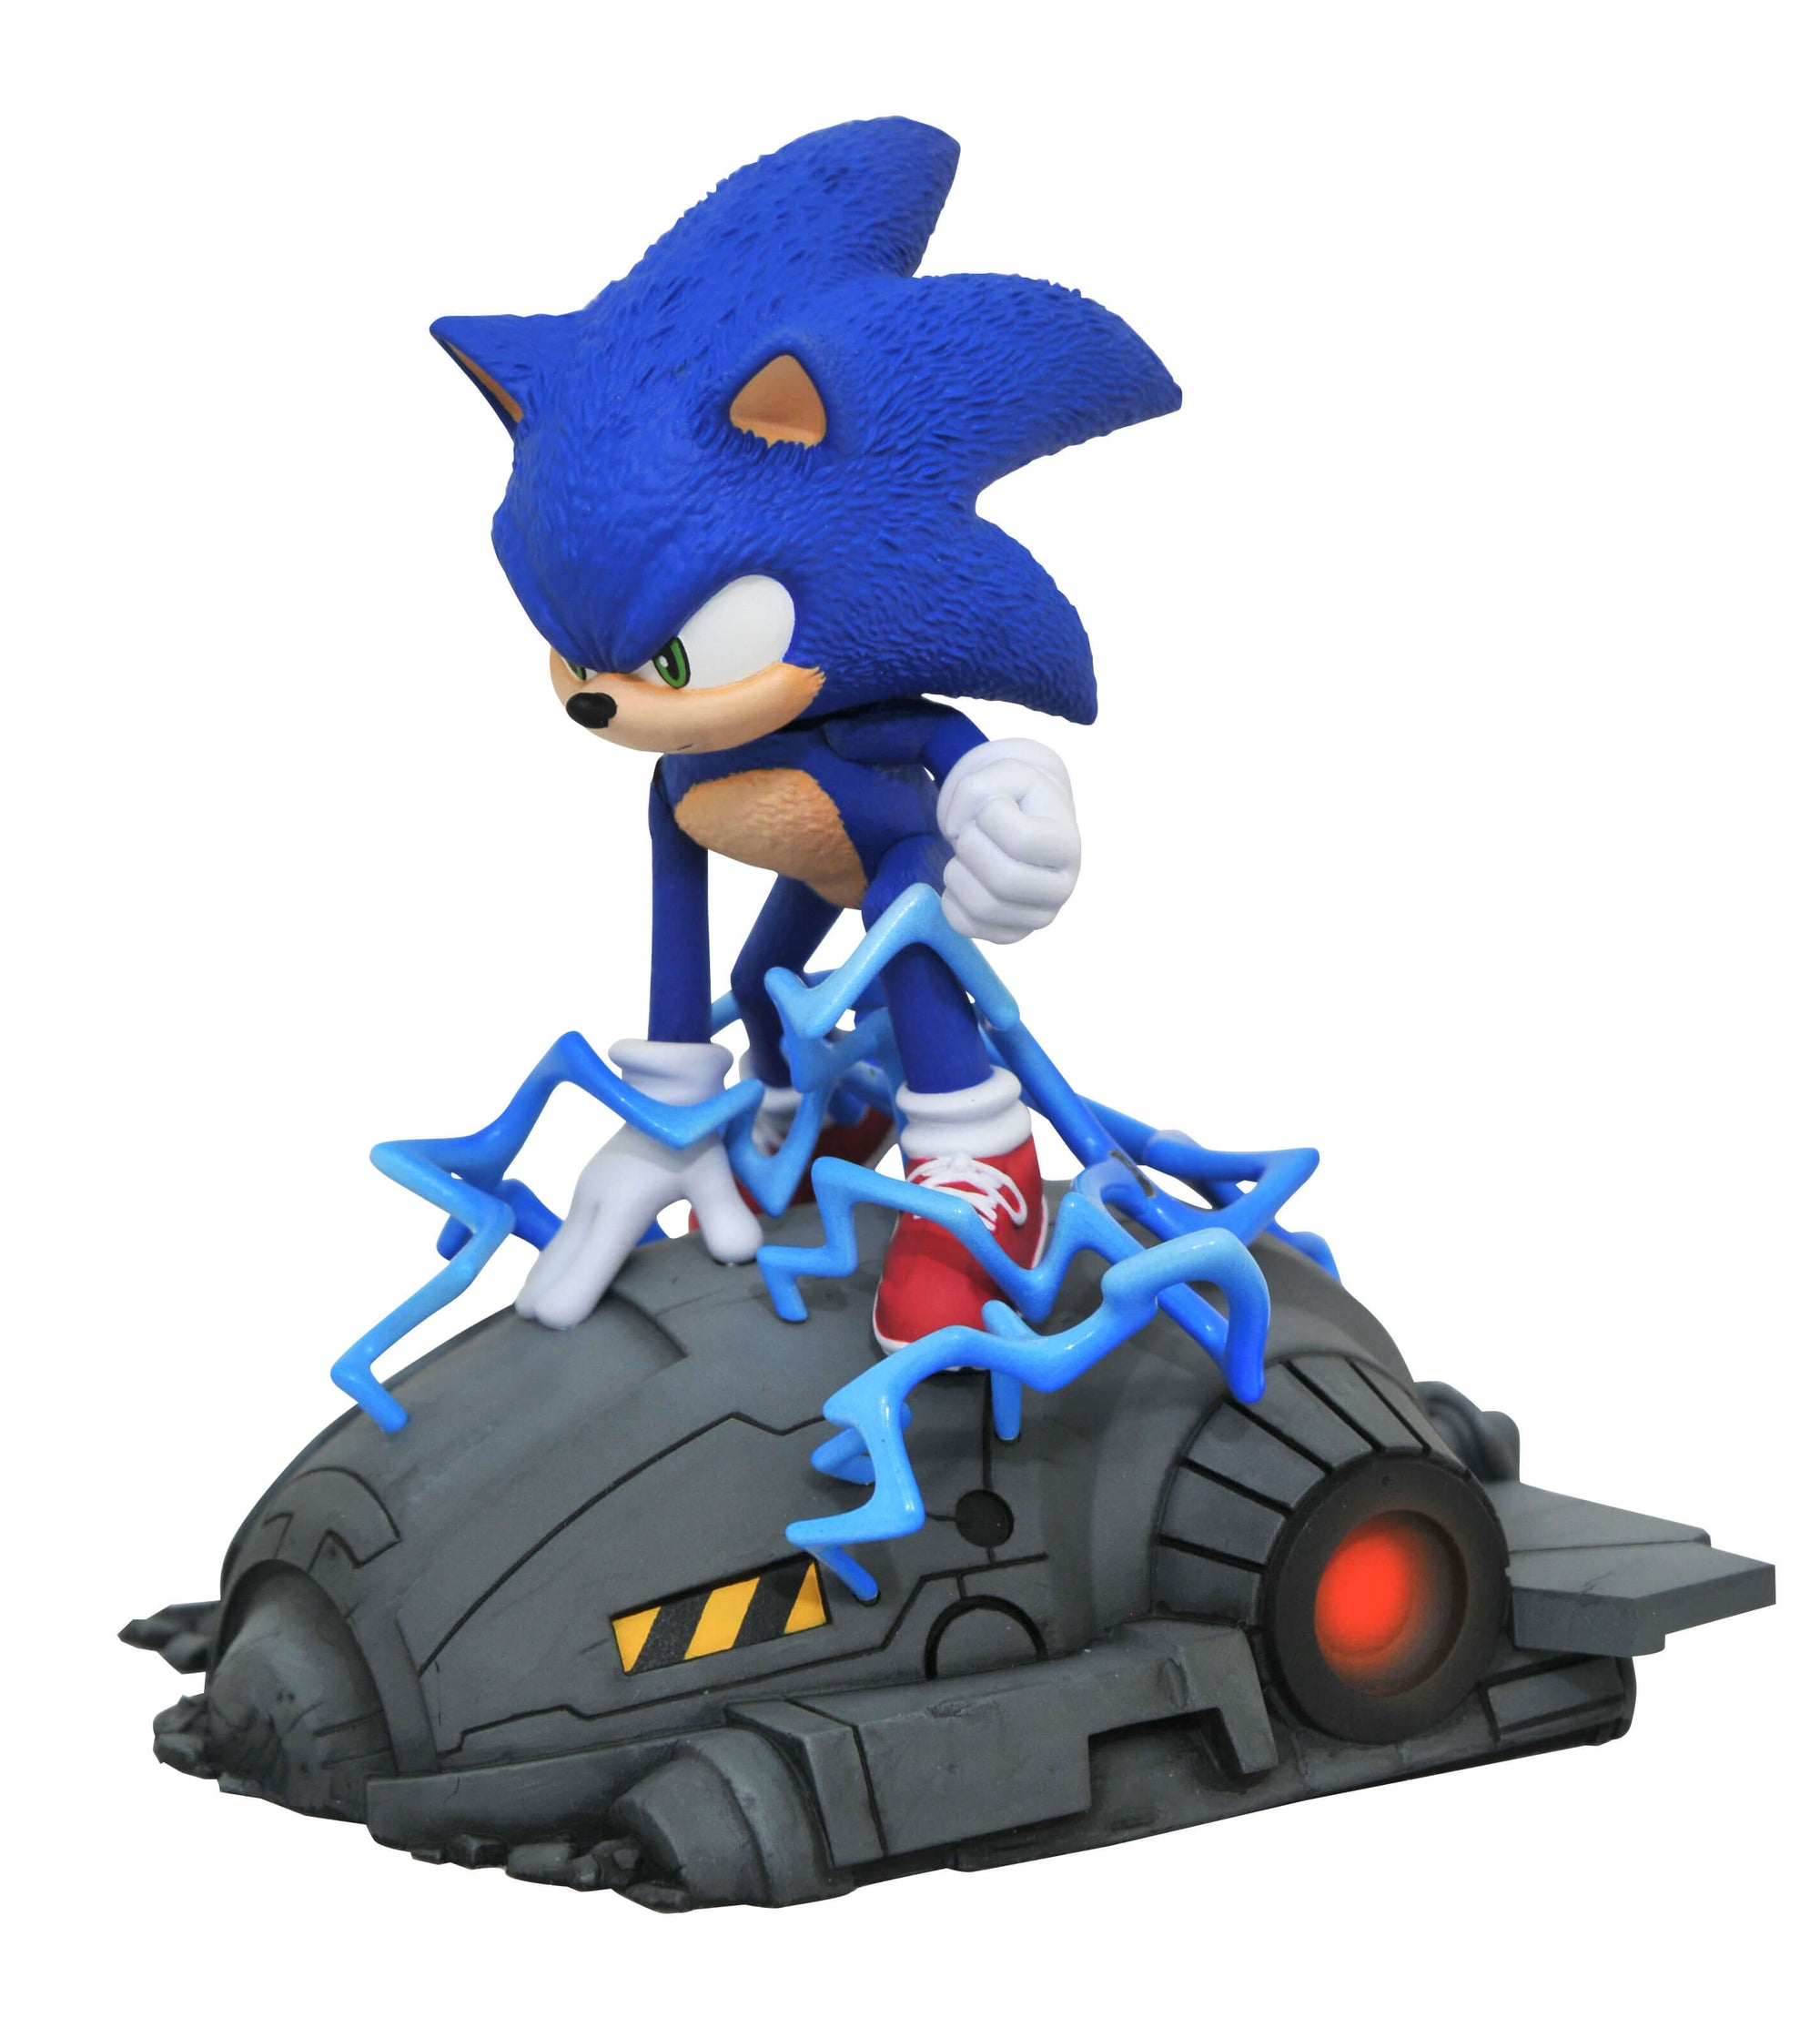 Sonic 1 6 Scale Movie Statue By Diamond Select Toys Now Superherotoystore